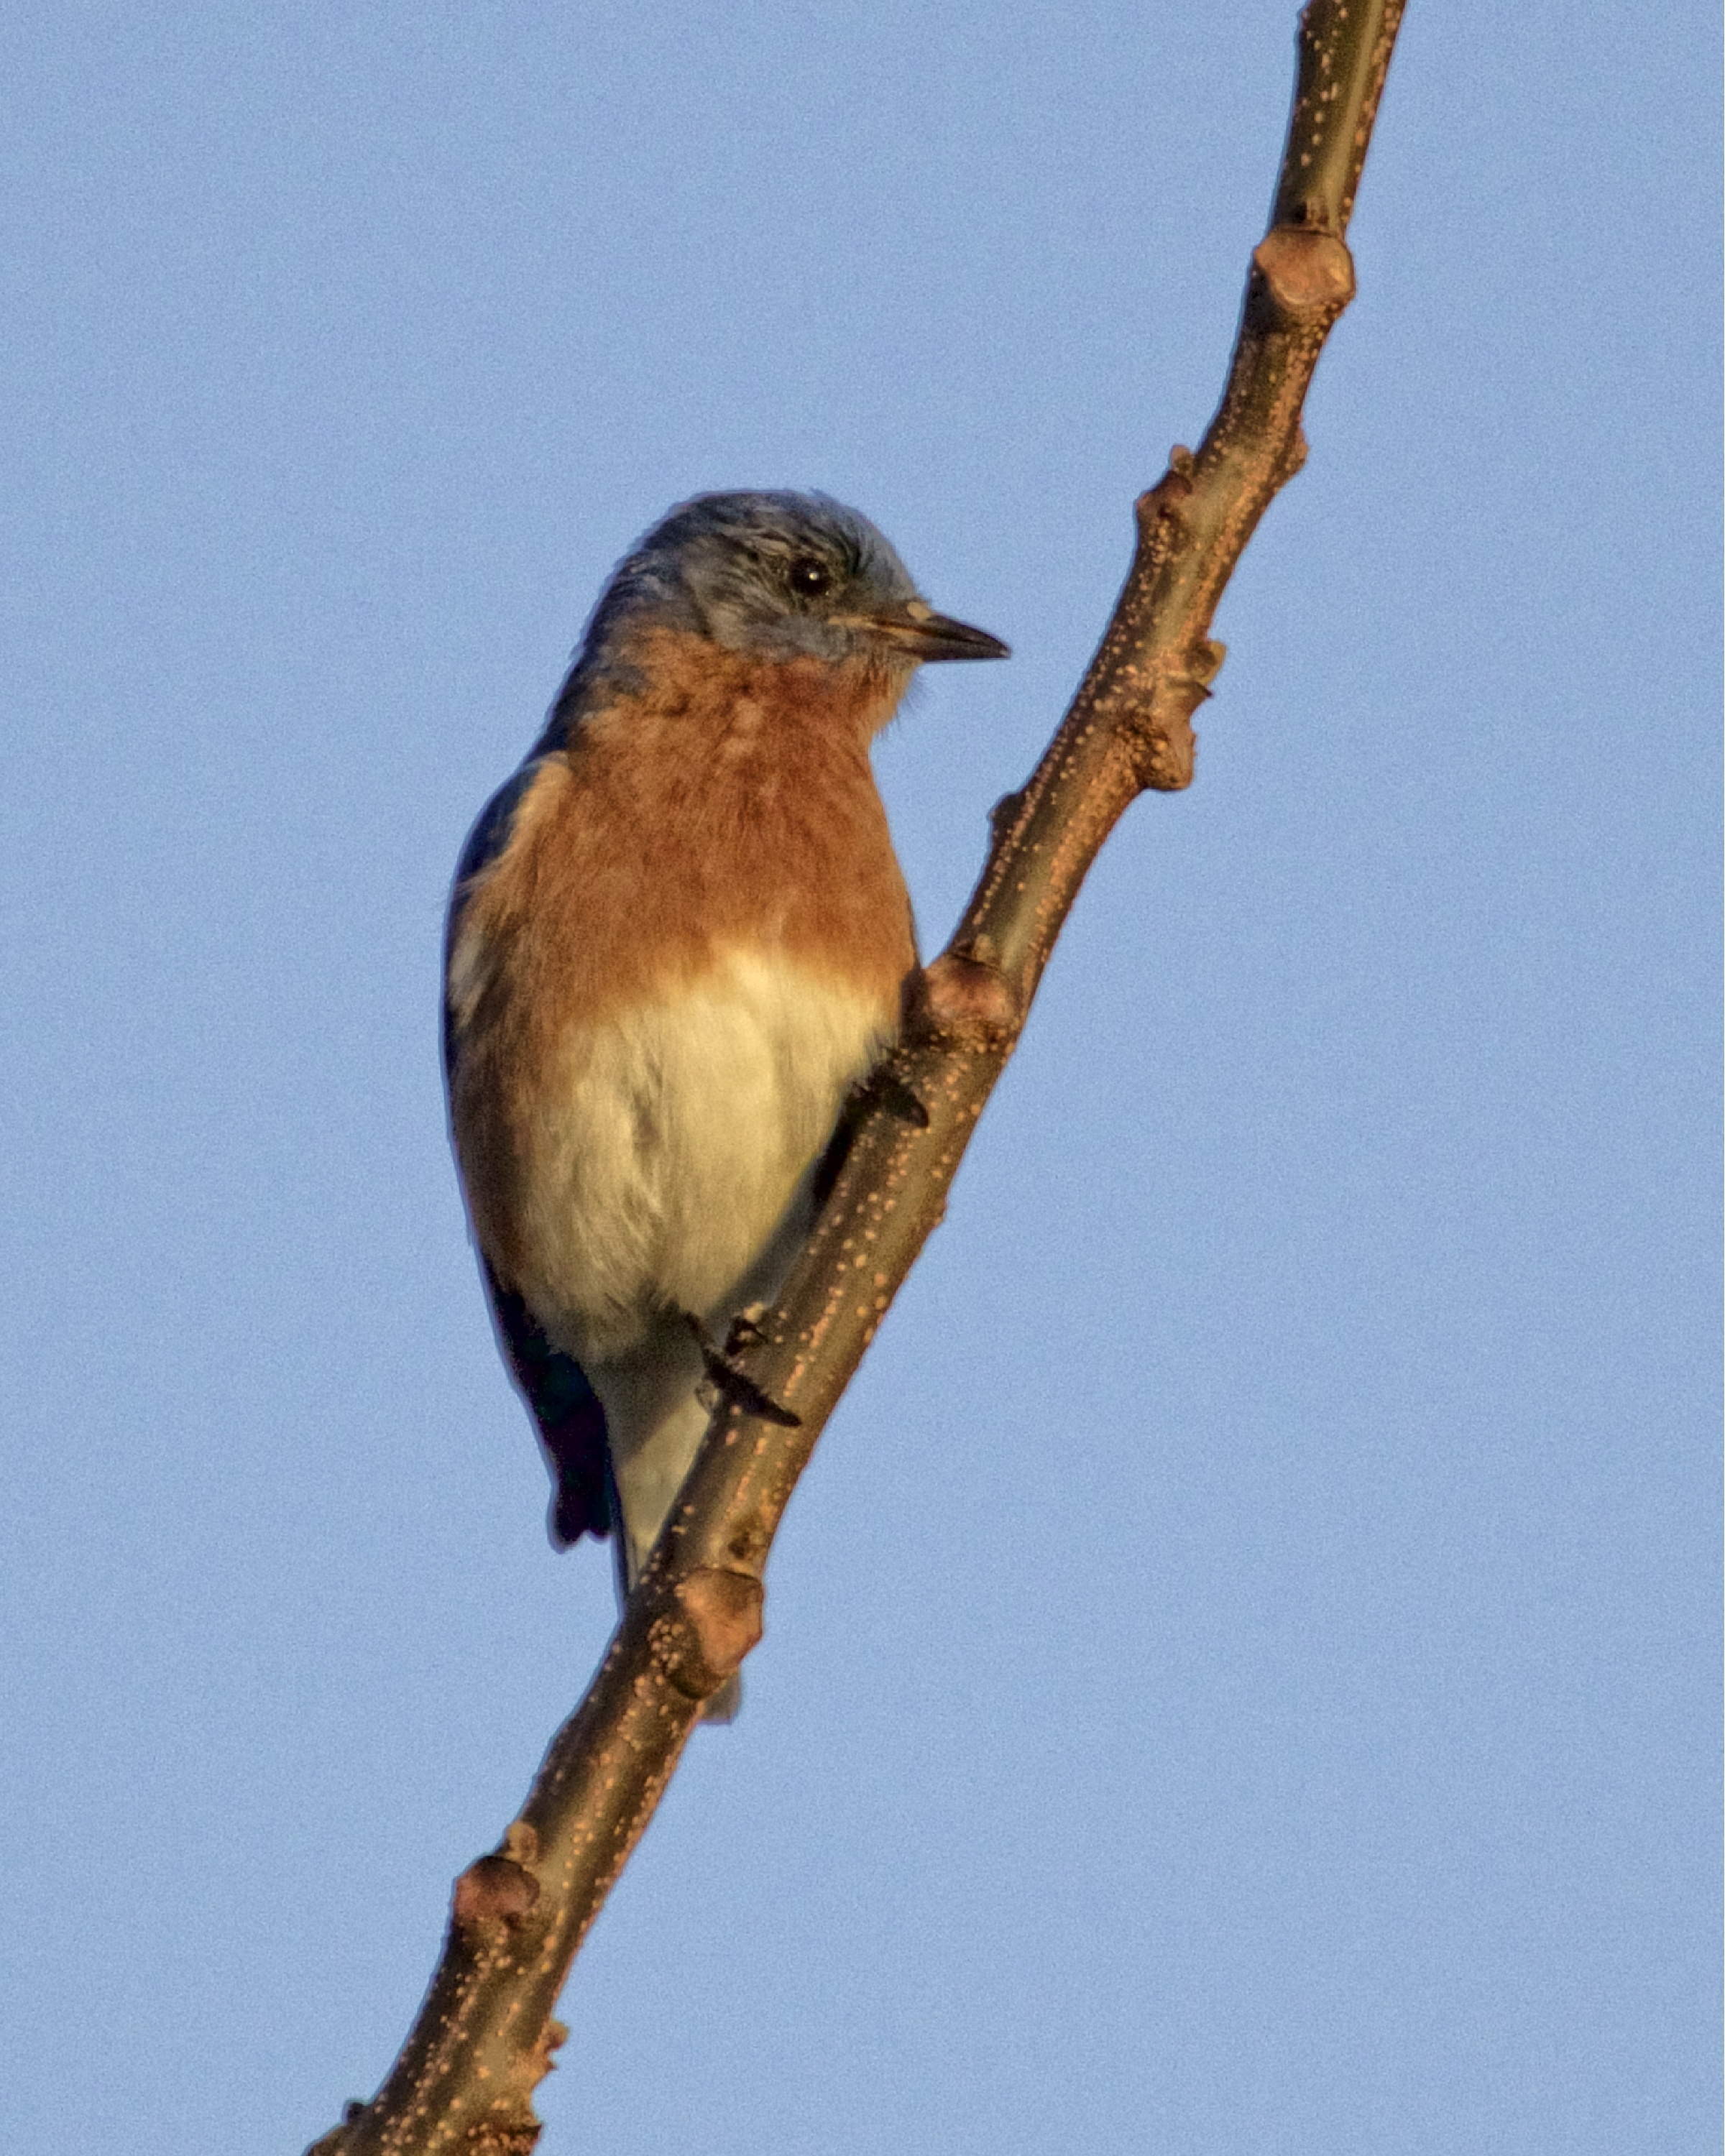 This male Eastern Bluebird's mate is sitting on eggs already..